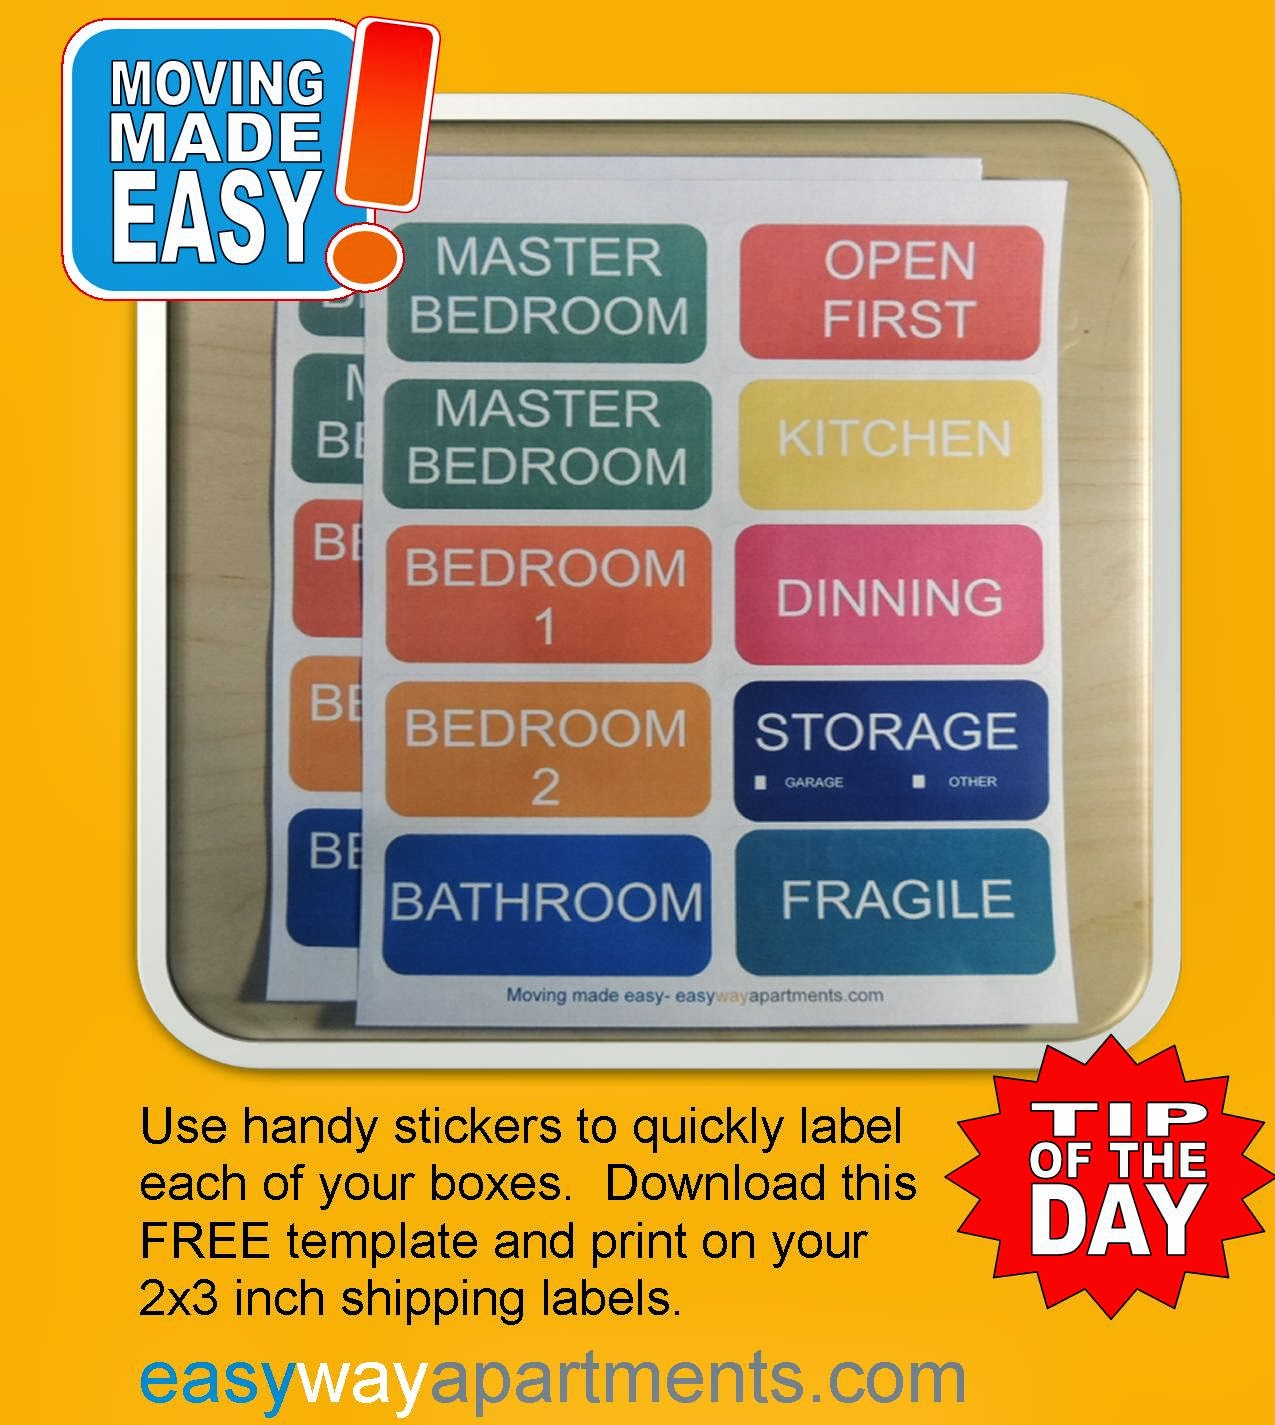 Sticker 4 Tips to Revitalize Your Apartment